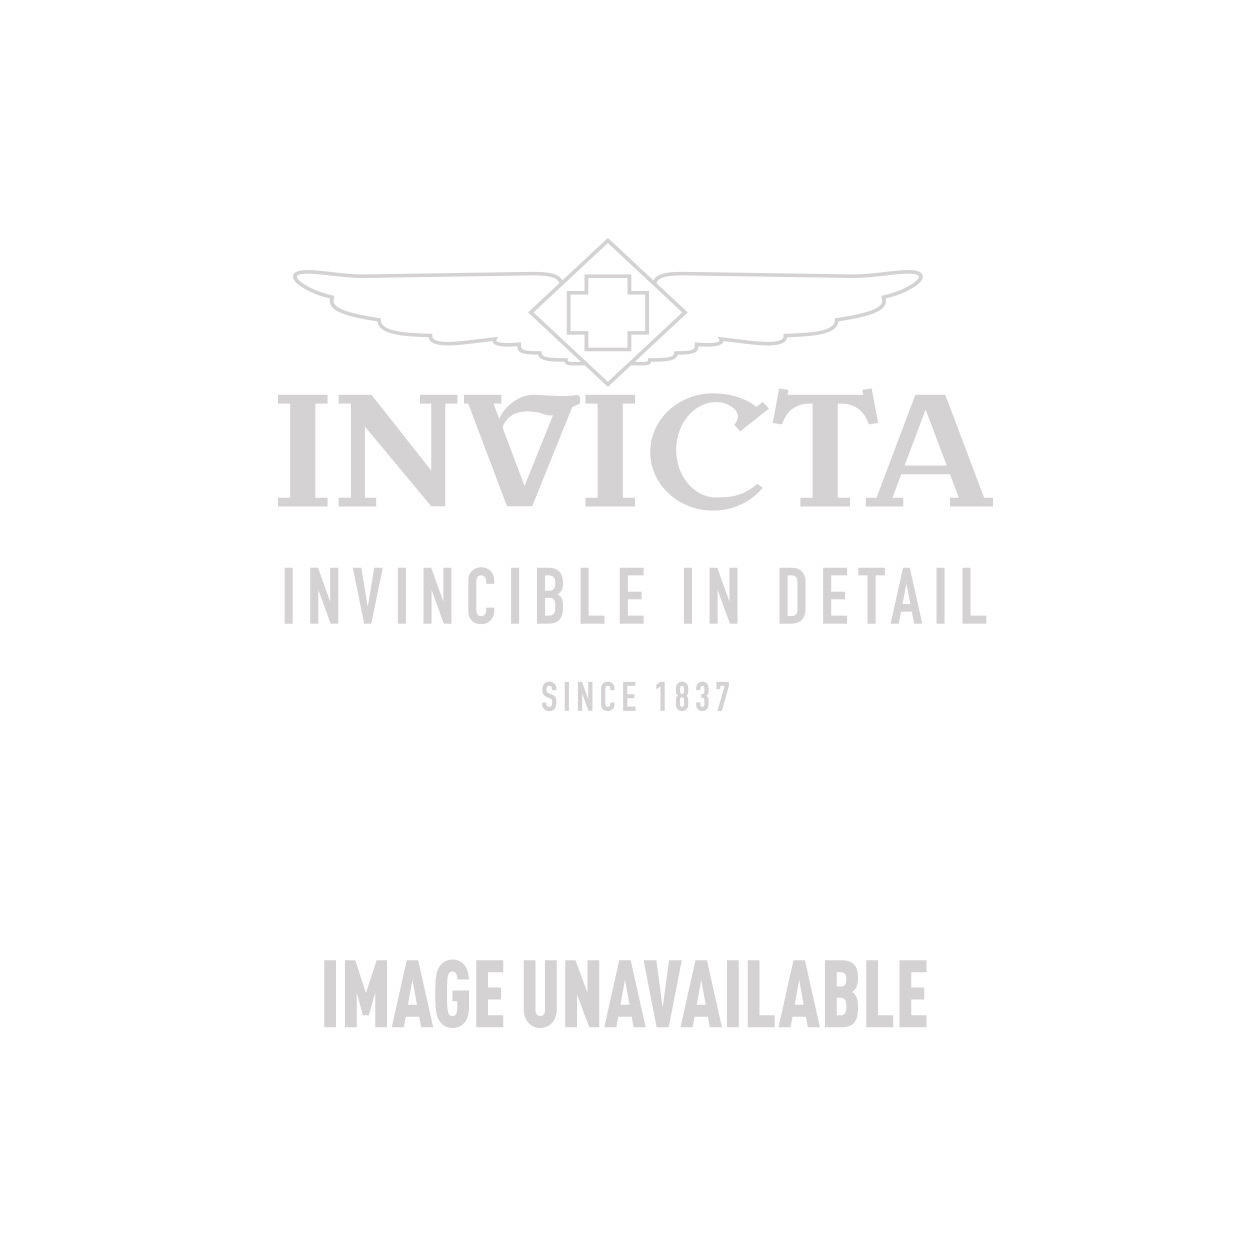 Invicta Angel Swiss Movement Quartz Watch - Stainless Steel case Stainless Steel band - Model 19874